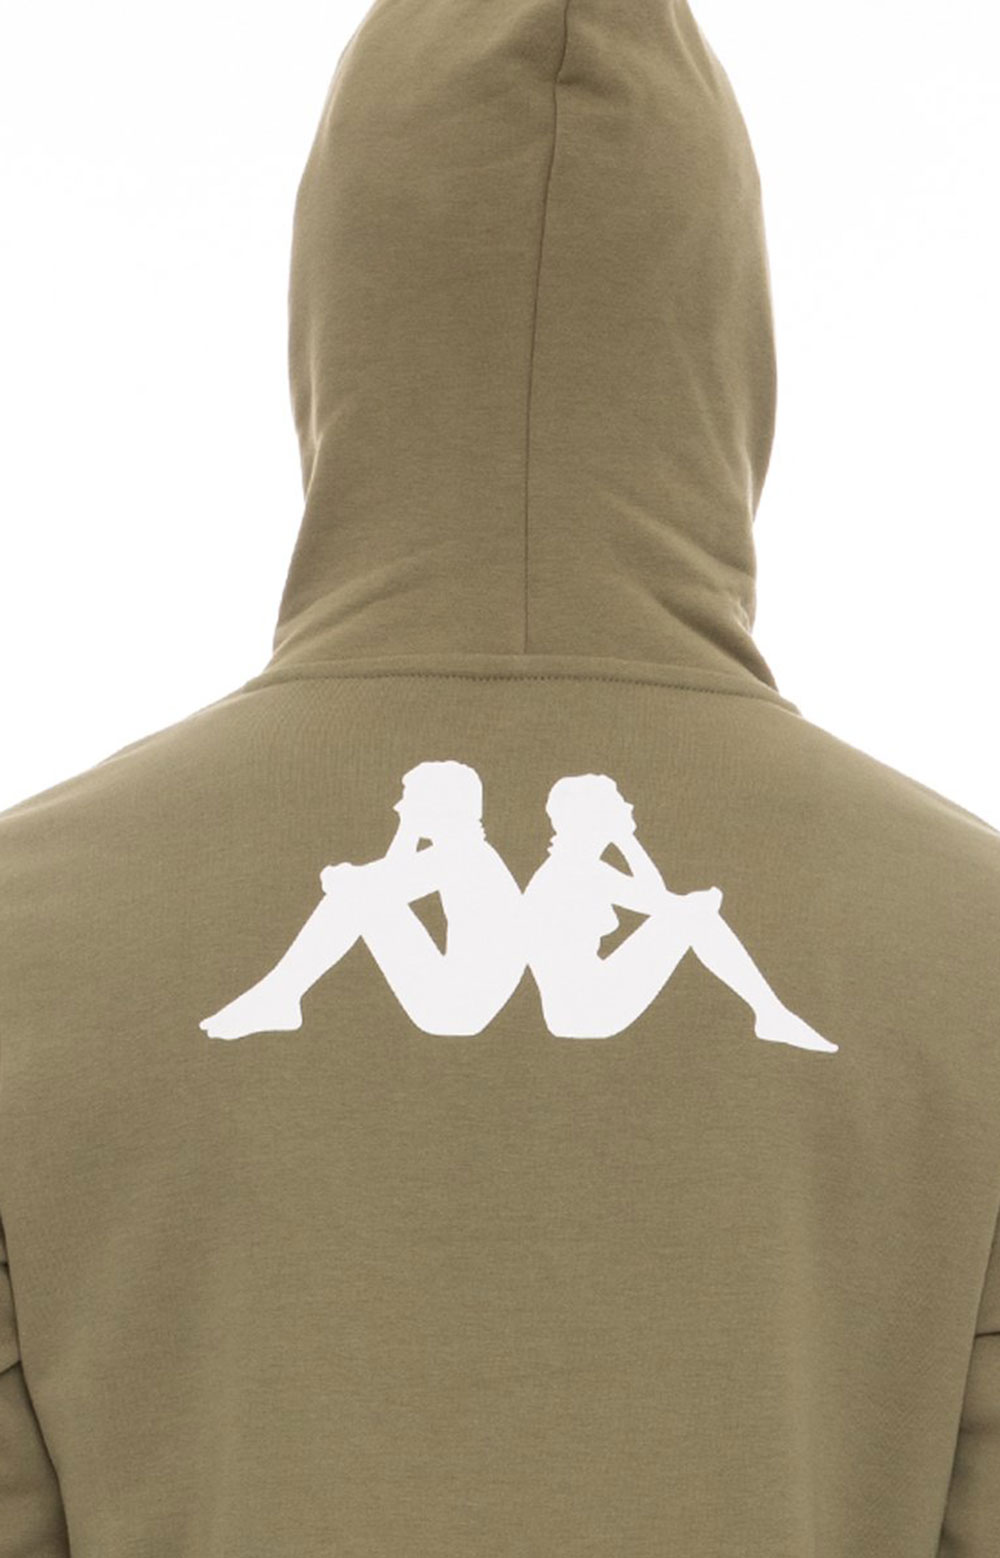 Authentic Haris Pullover Hoodie - Olive Green/Light Green/White  4